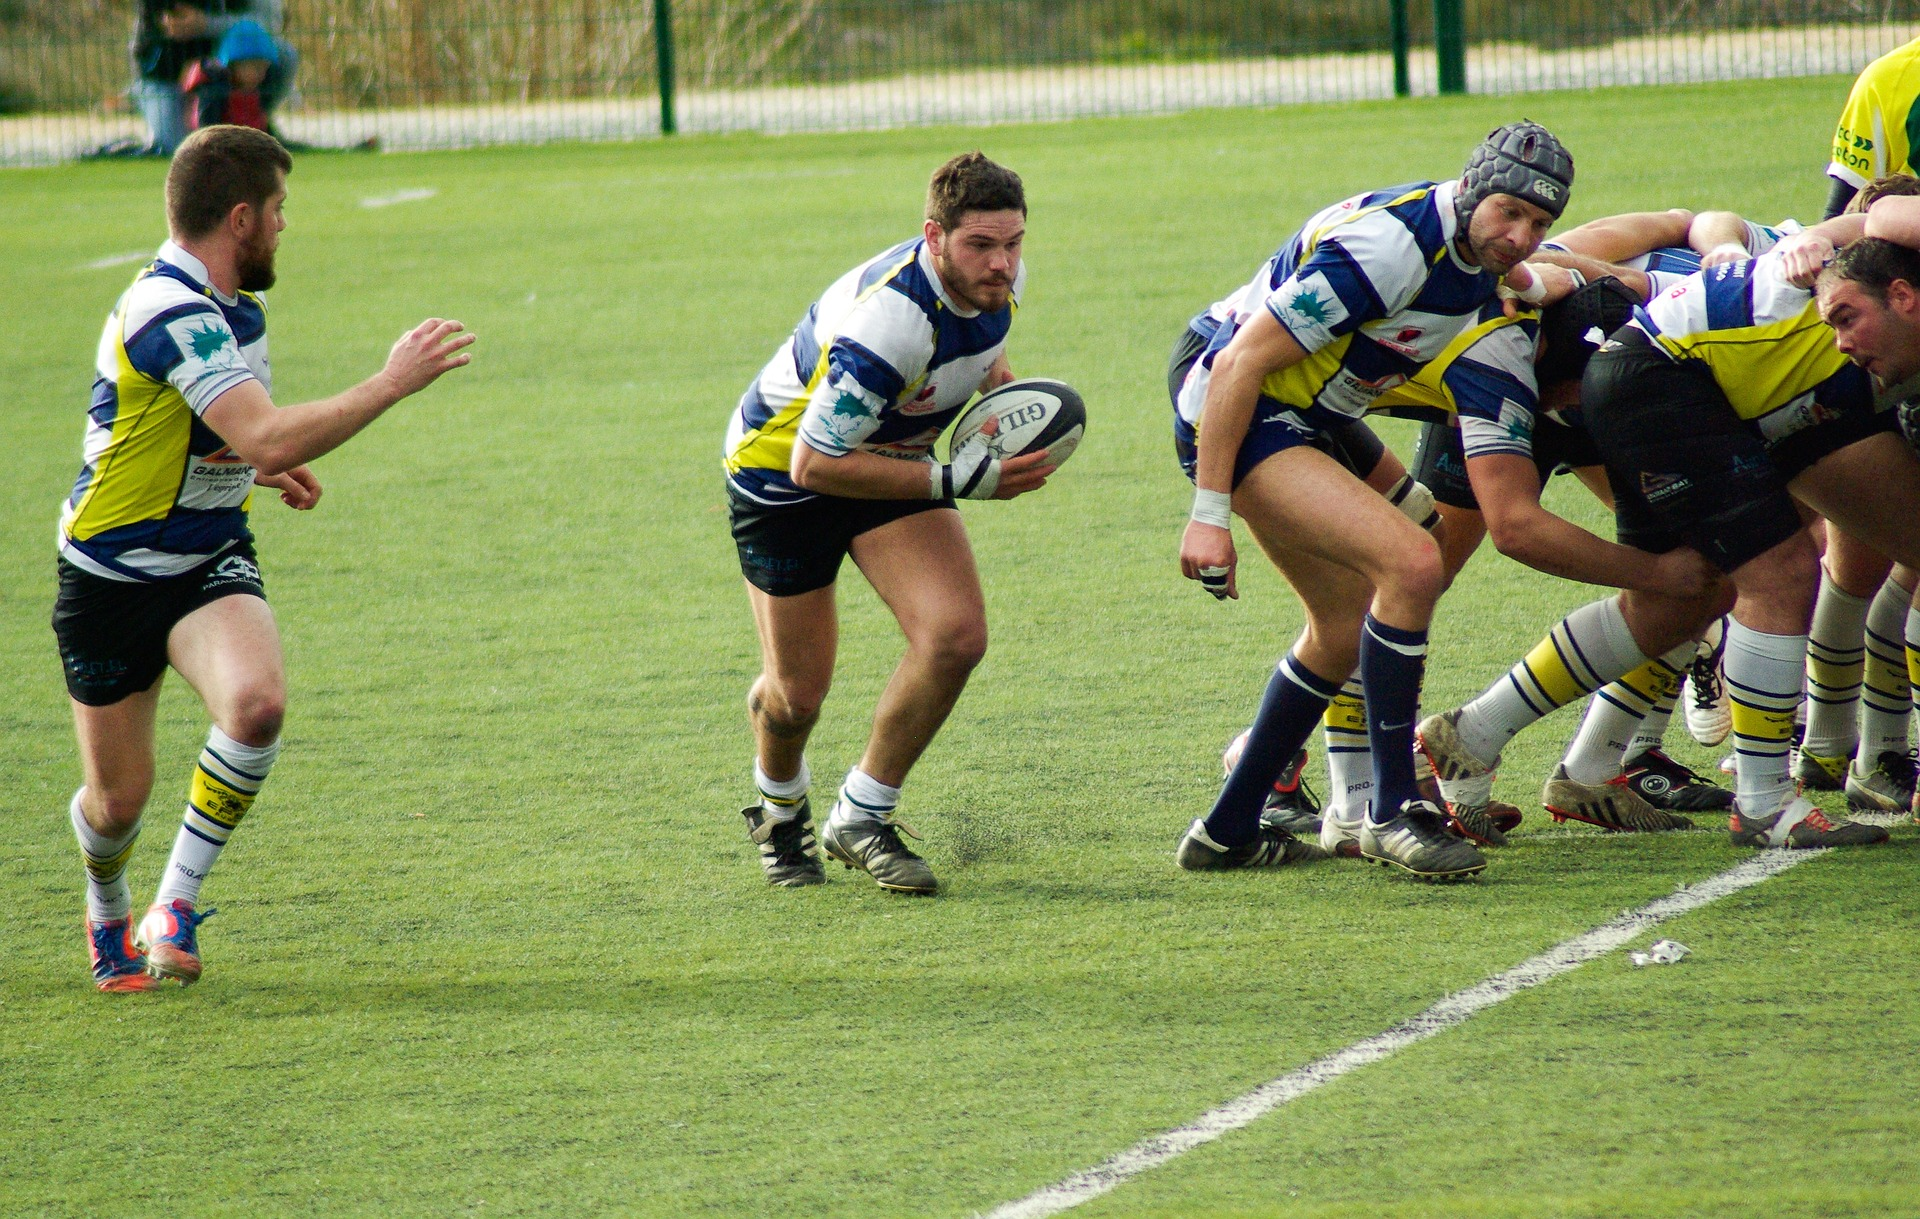 rugby-655038_1920